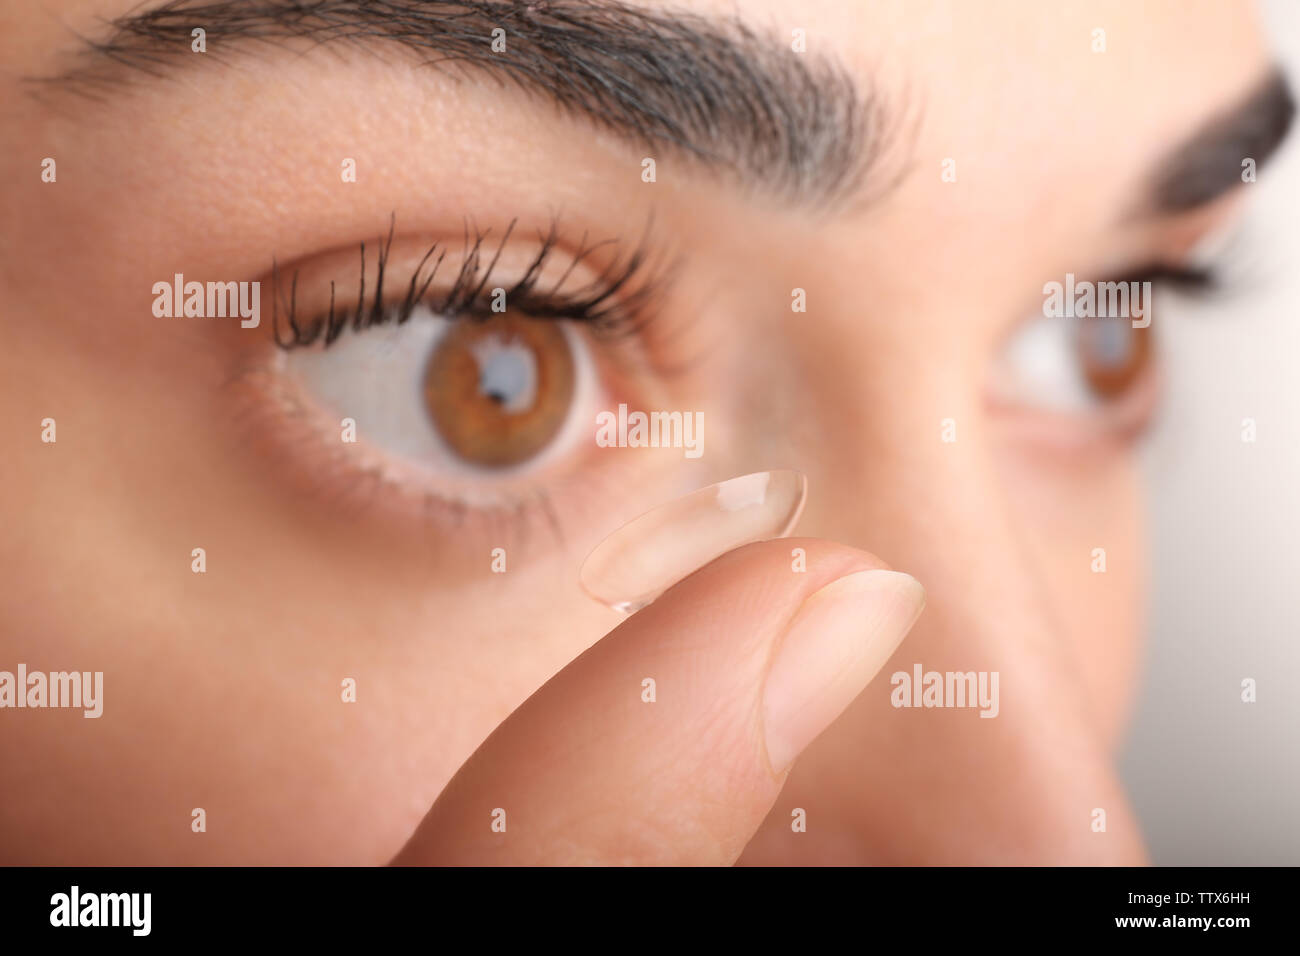 Young woman putting contact lens in her eye, close up view. Medicine and vision concept Stock Photo